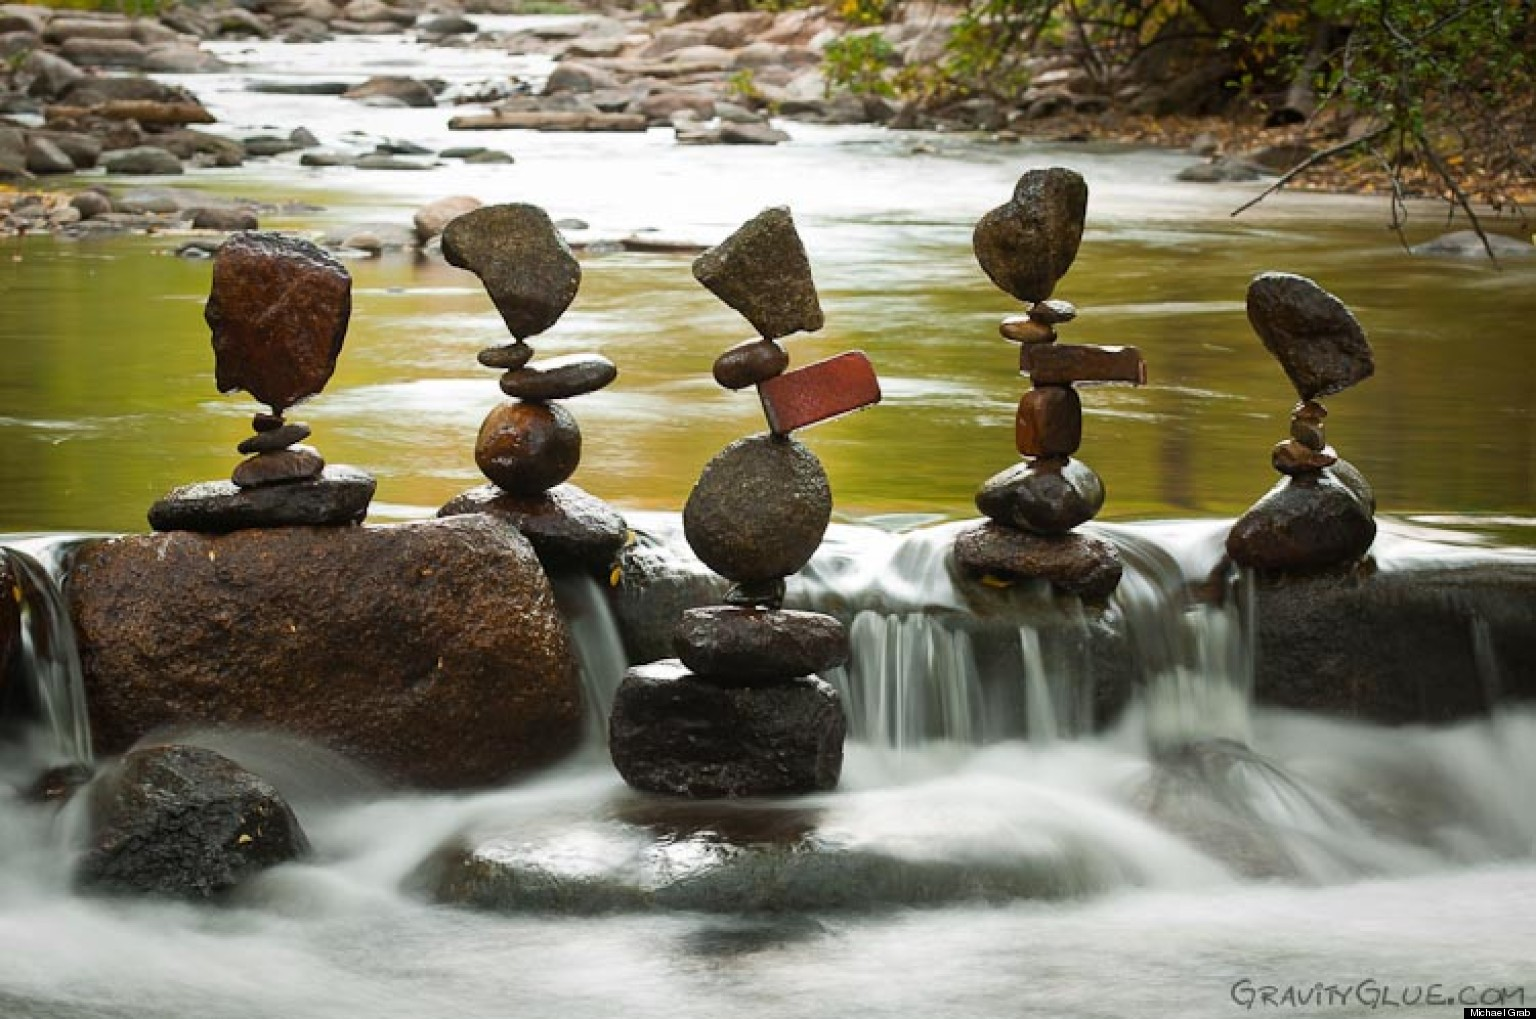 Gravity-Glue-–-Michael-Grab-Rock-Balancing-Art9